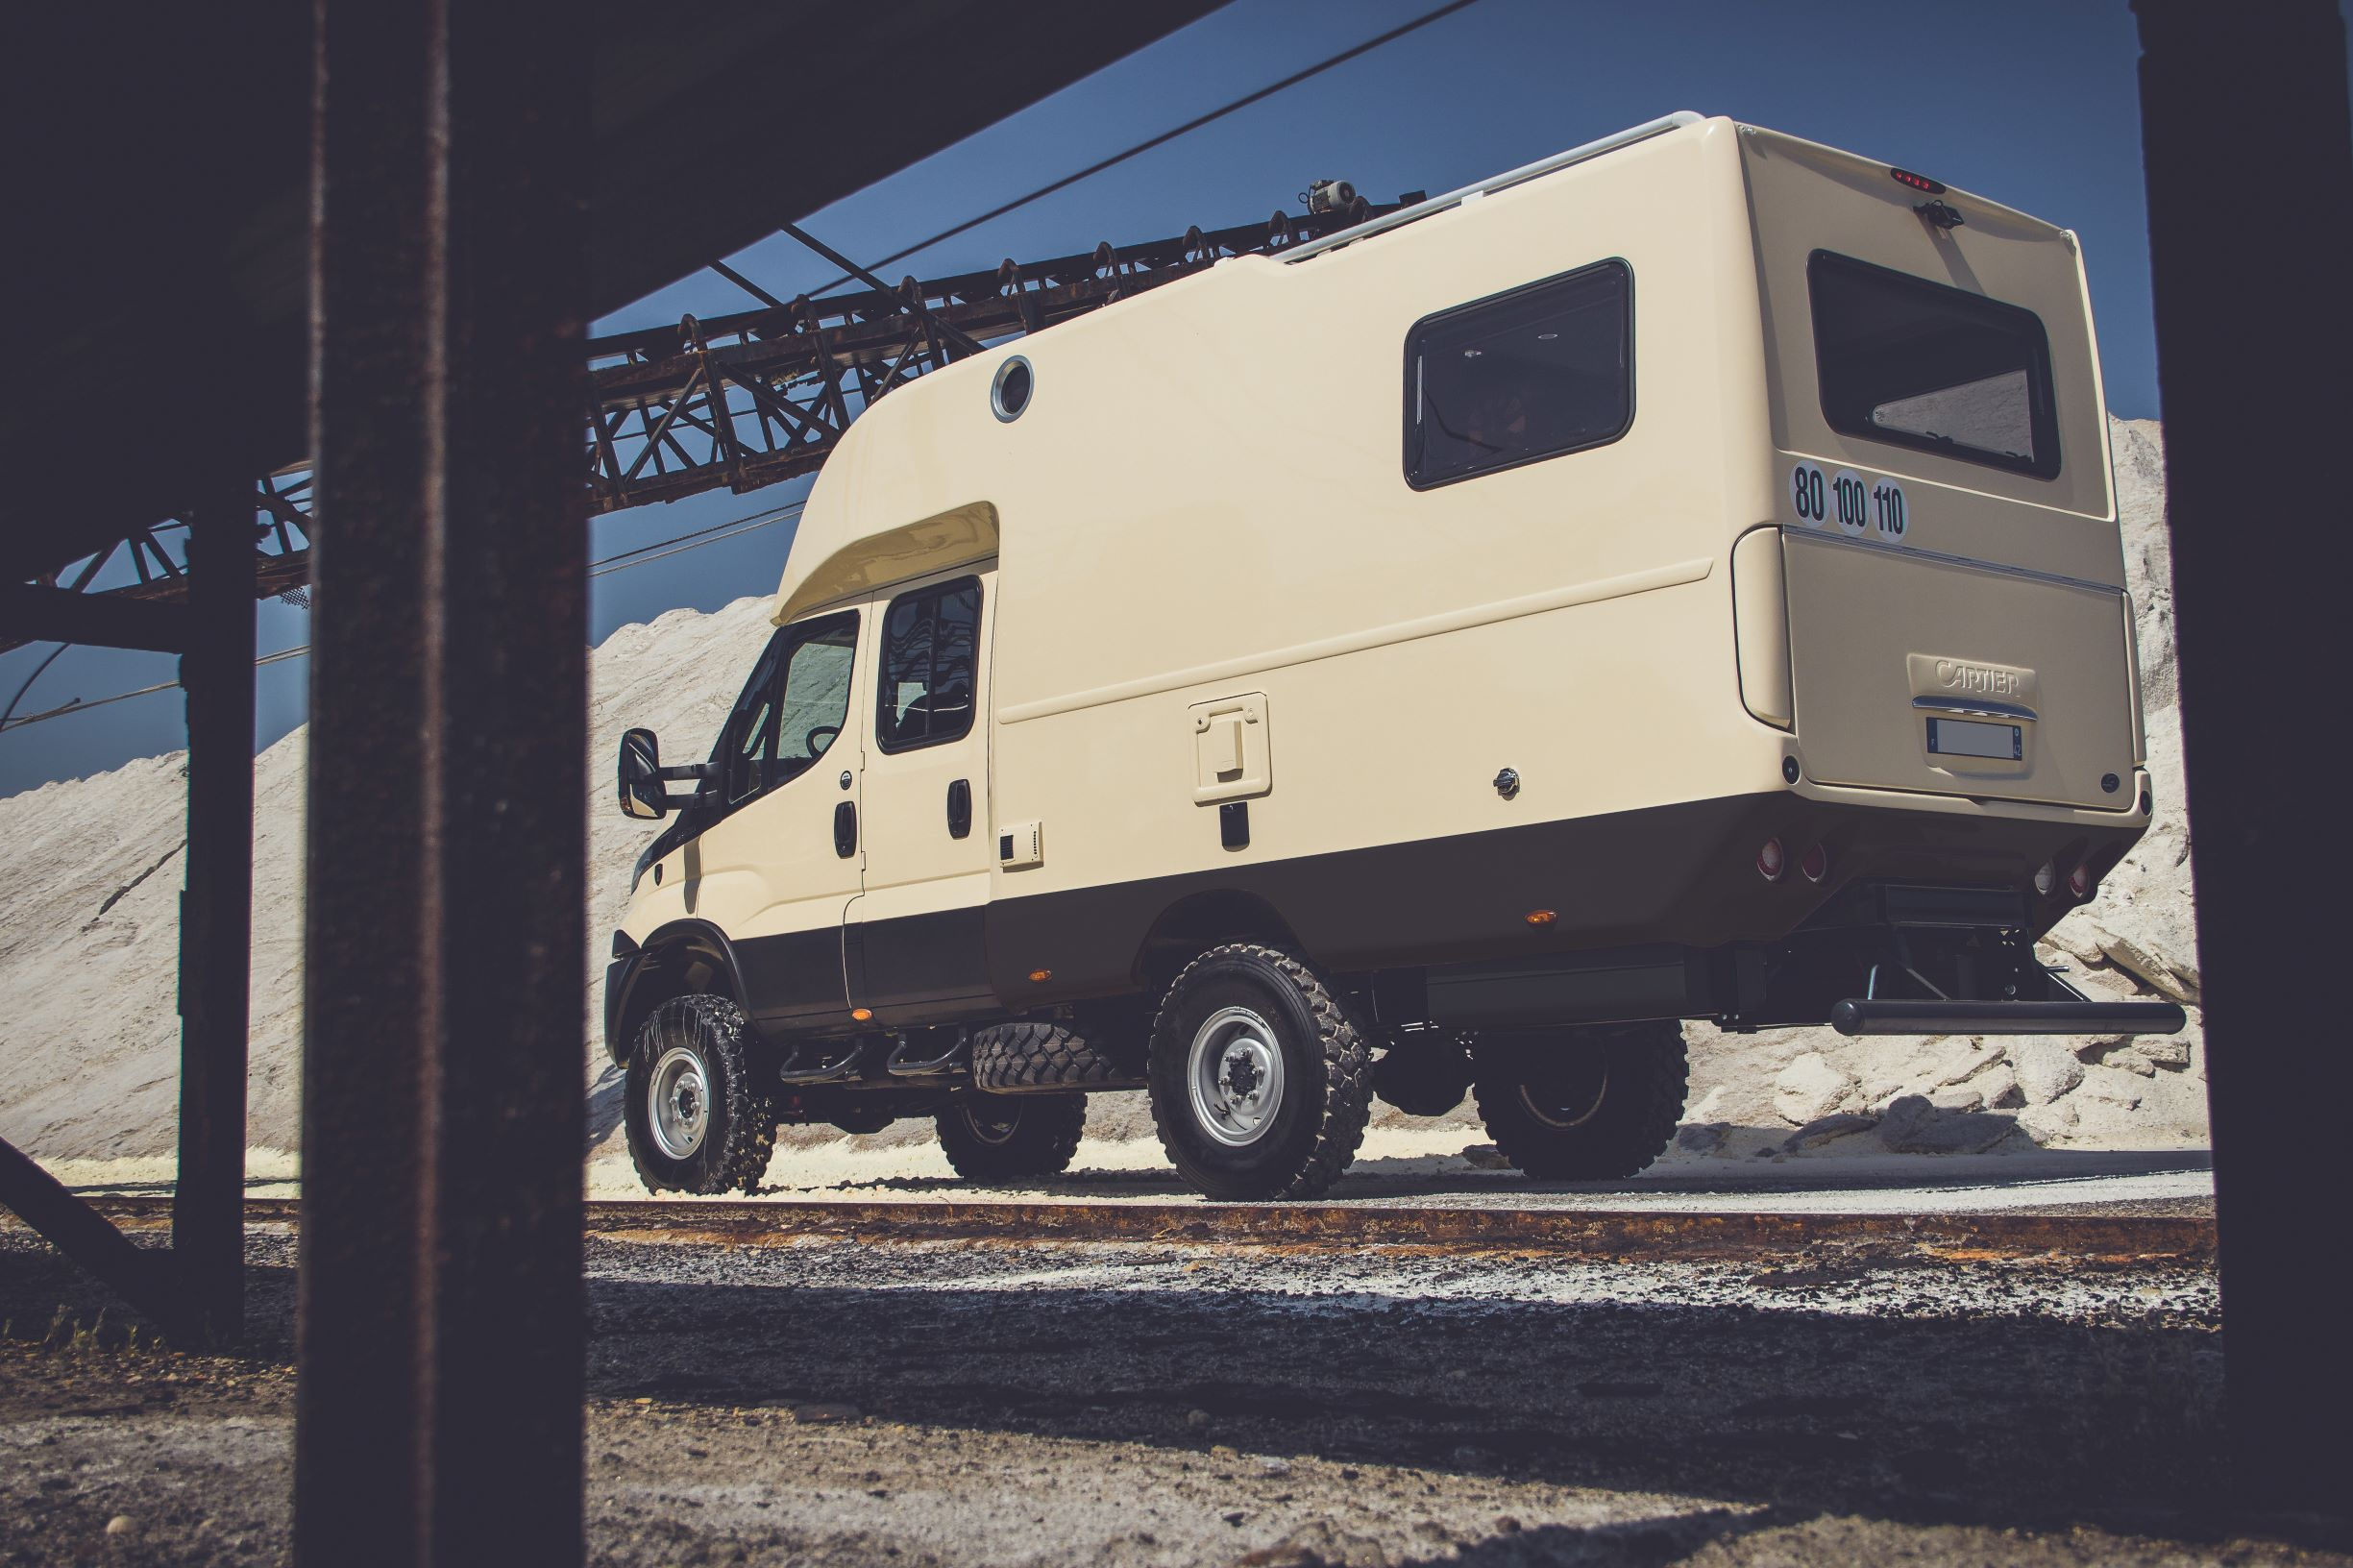 3C Cartier X-CAP camping-car Iveco Daily 4x4 Double cab